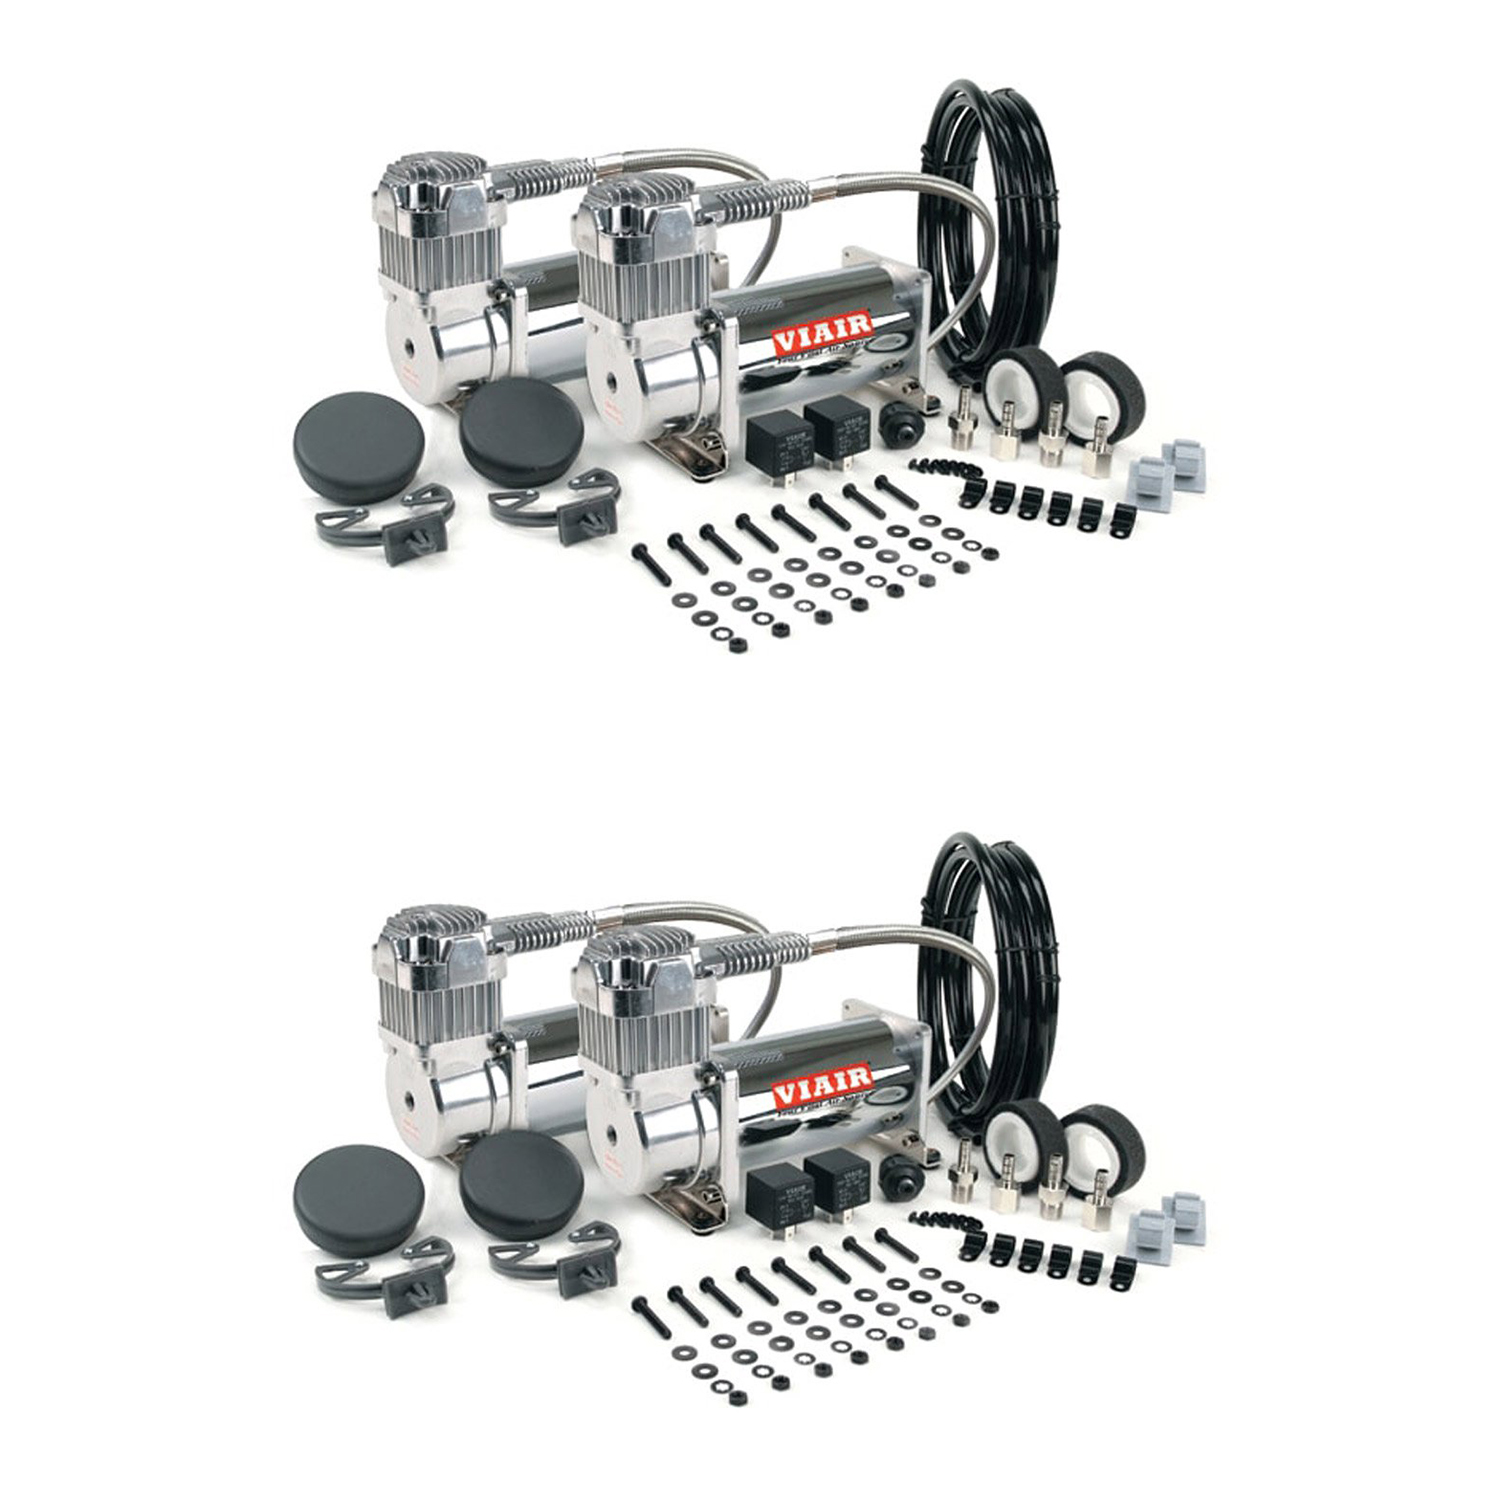 VIAIR Dual 400C 12 Volt 150 PSI Chrome Air Accessories